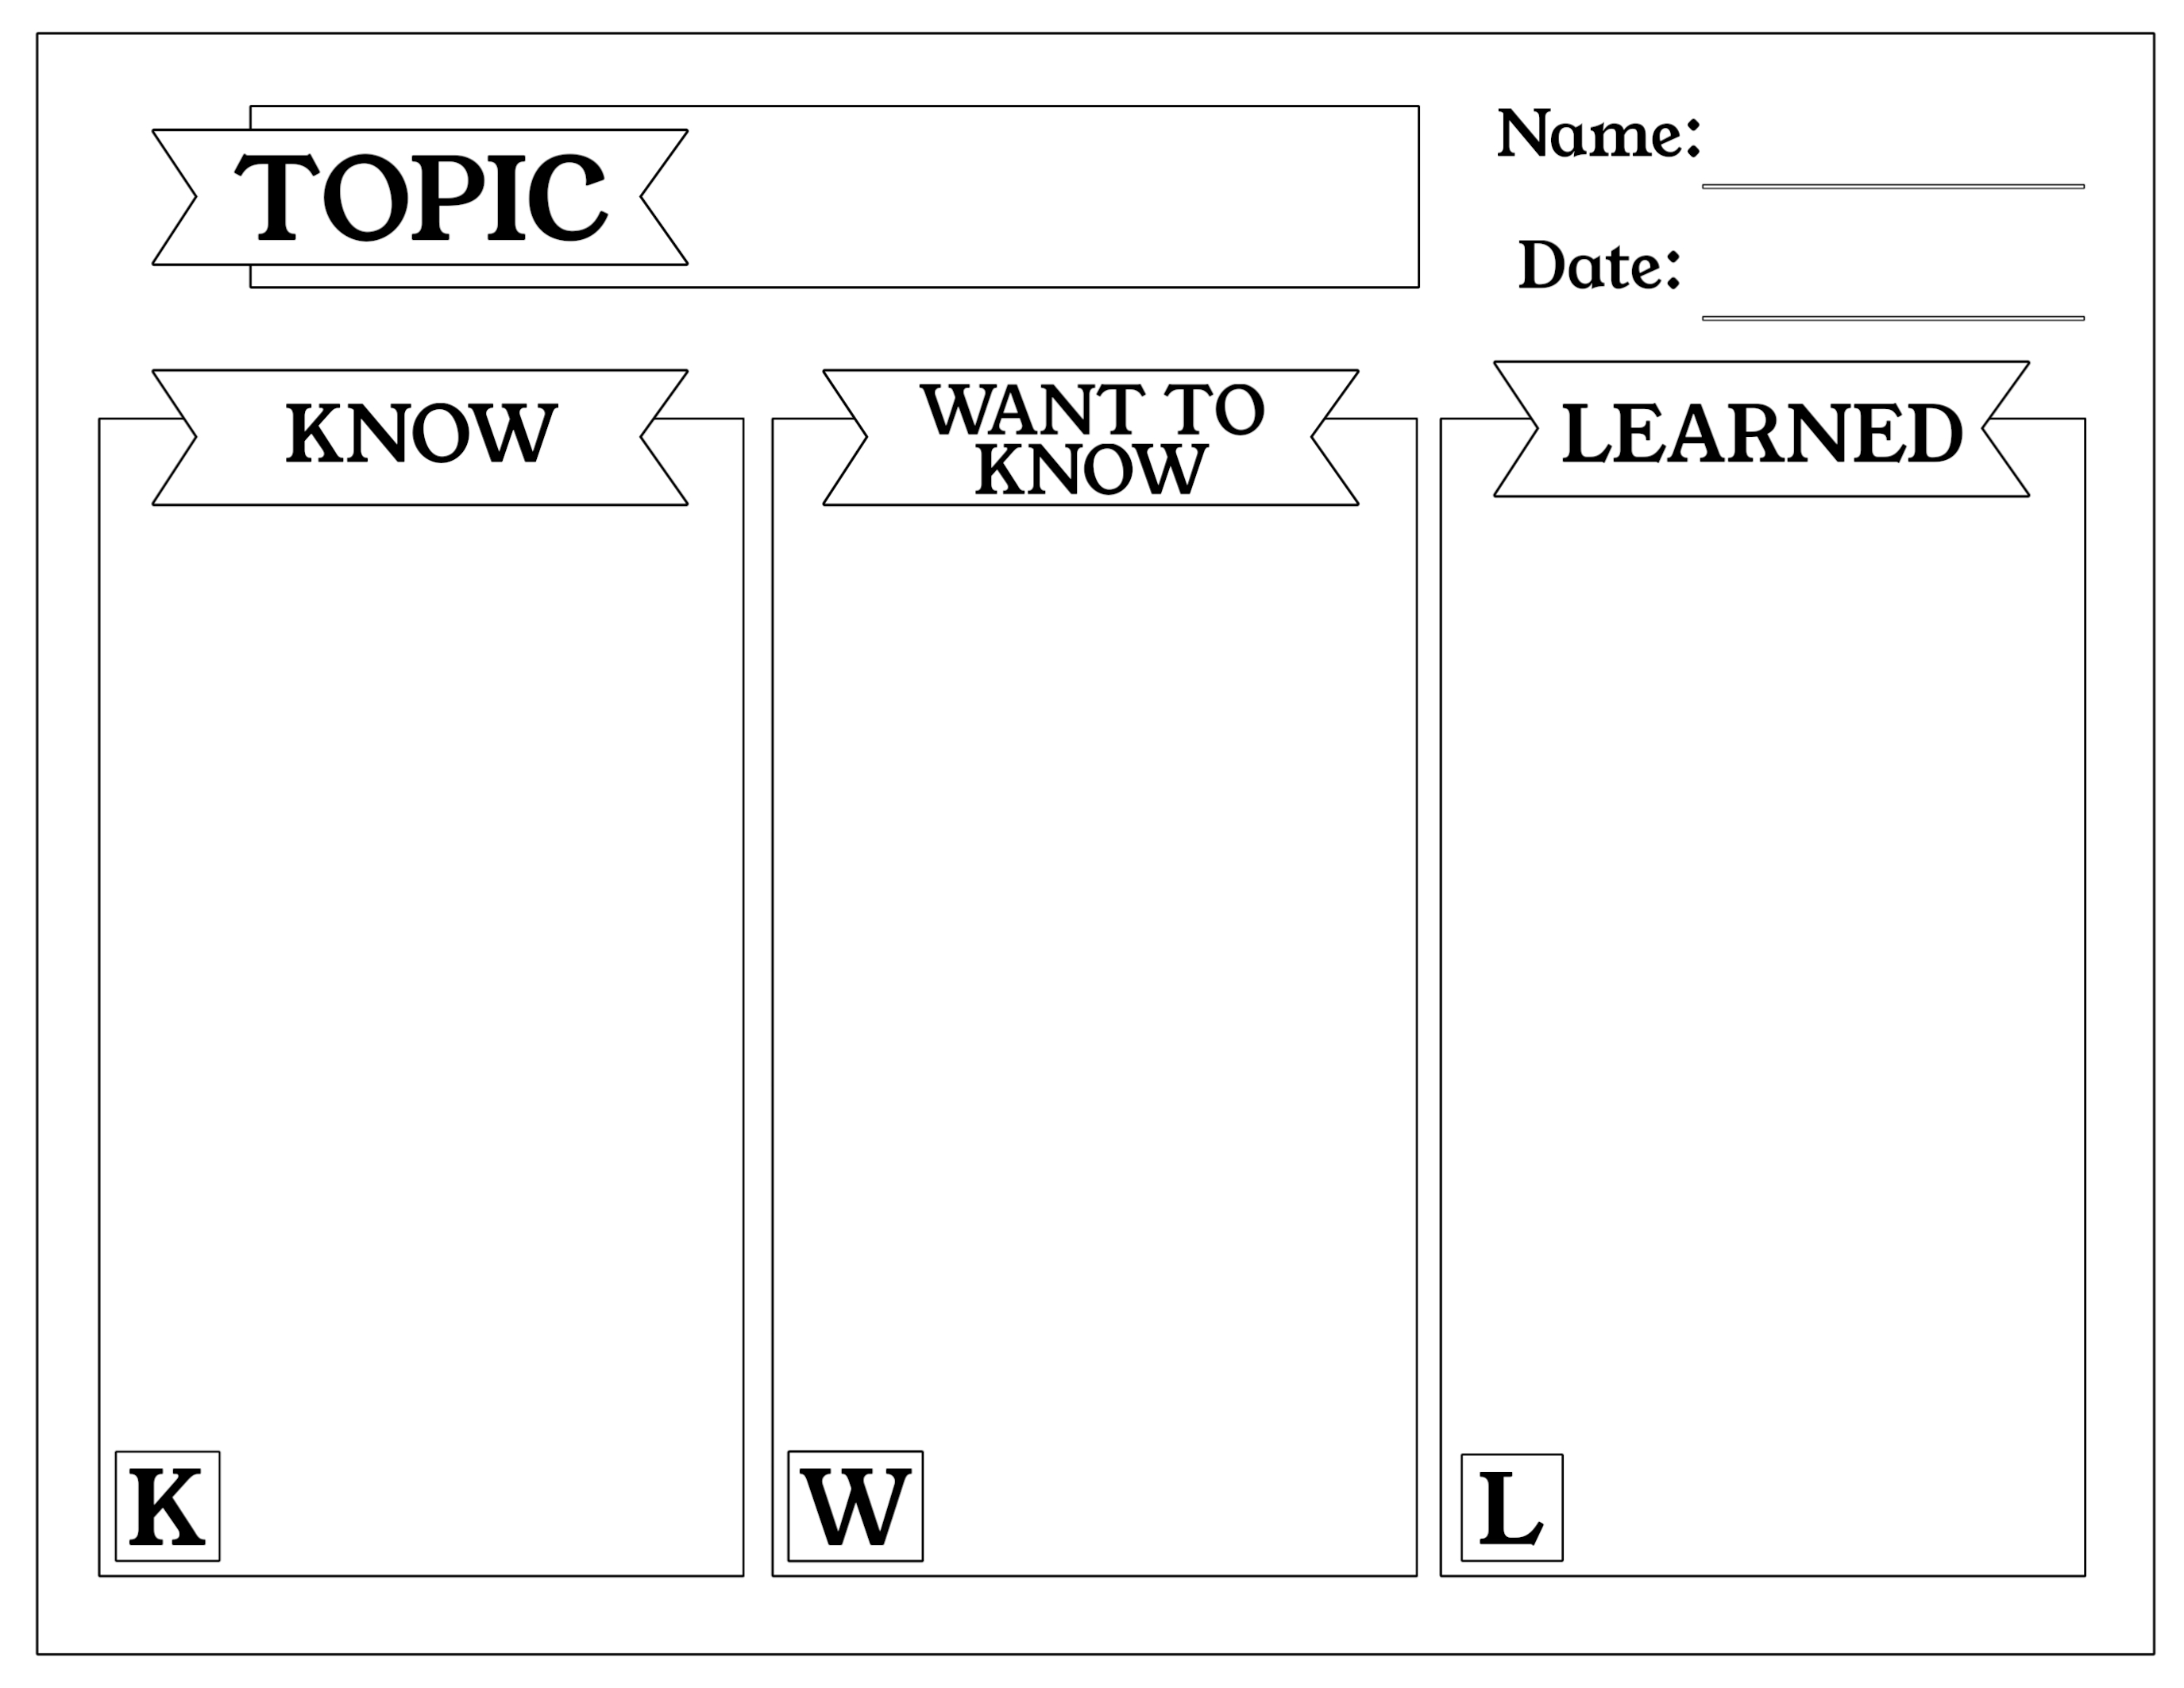 graphic regarding Kwl Chart Printable known as Free of charge KWL Chart Printable Impression Organizer - Paper Path Layout